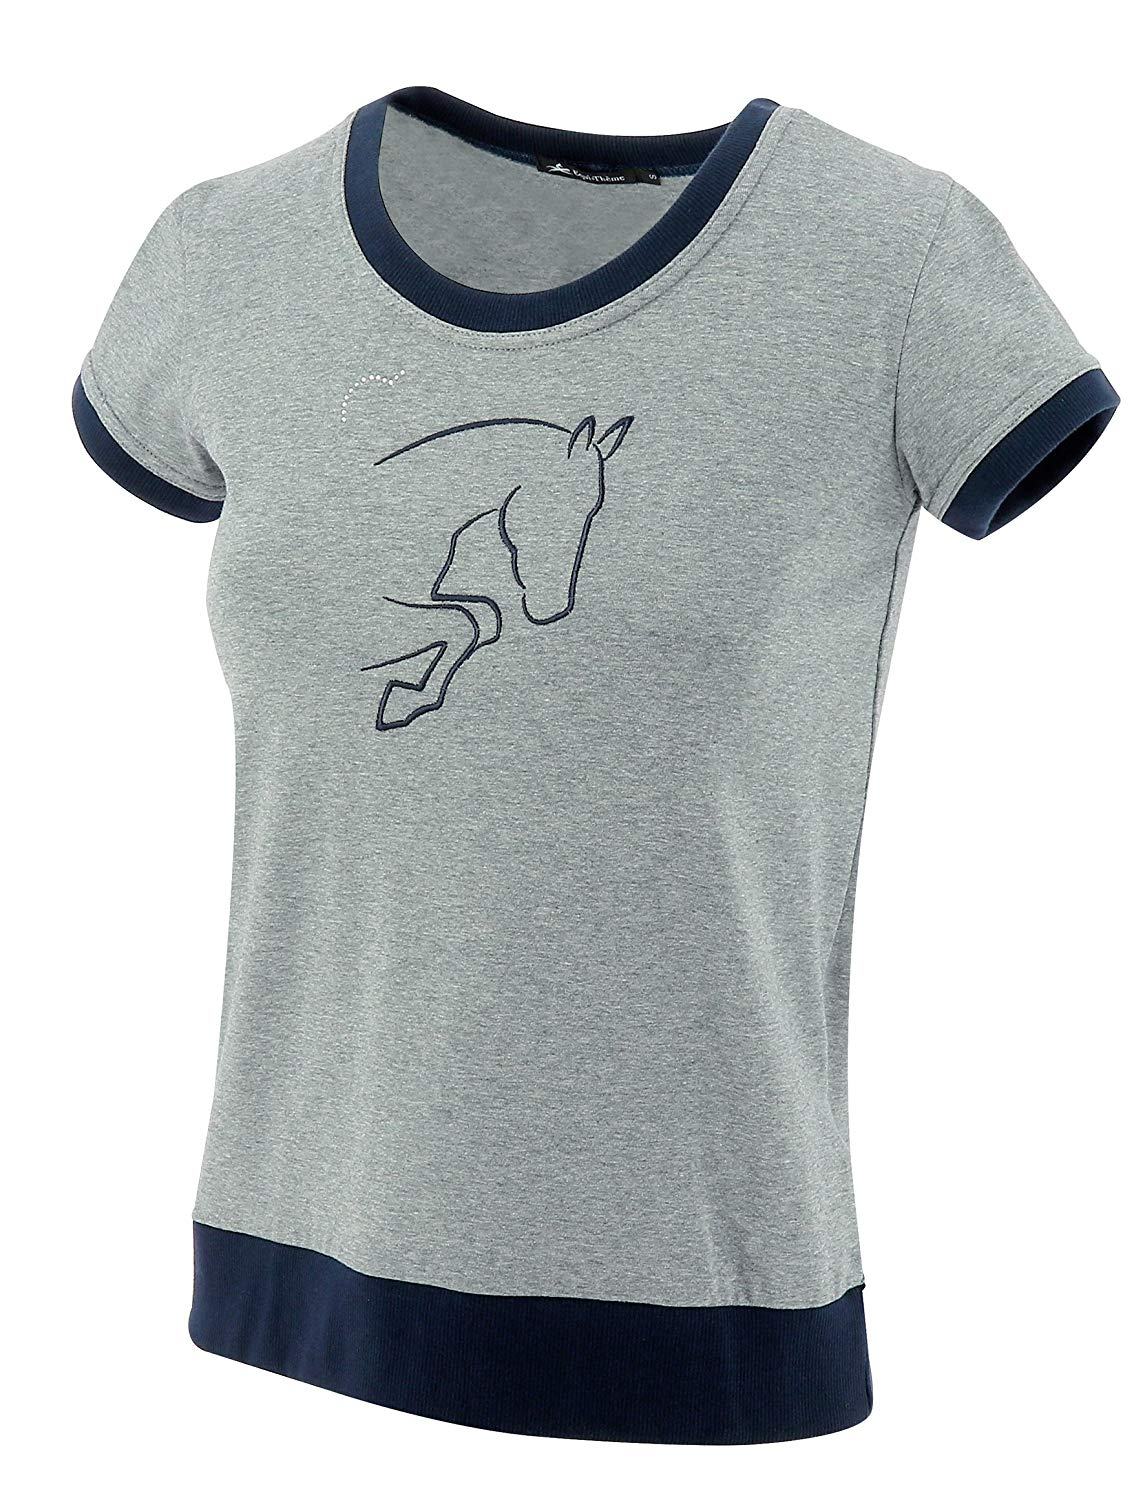 Equithème - Jump Style T-shirt